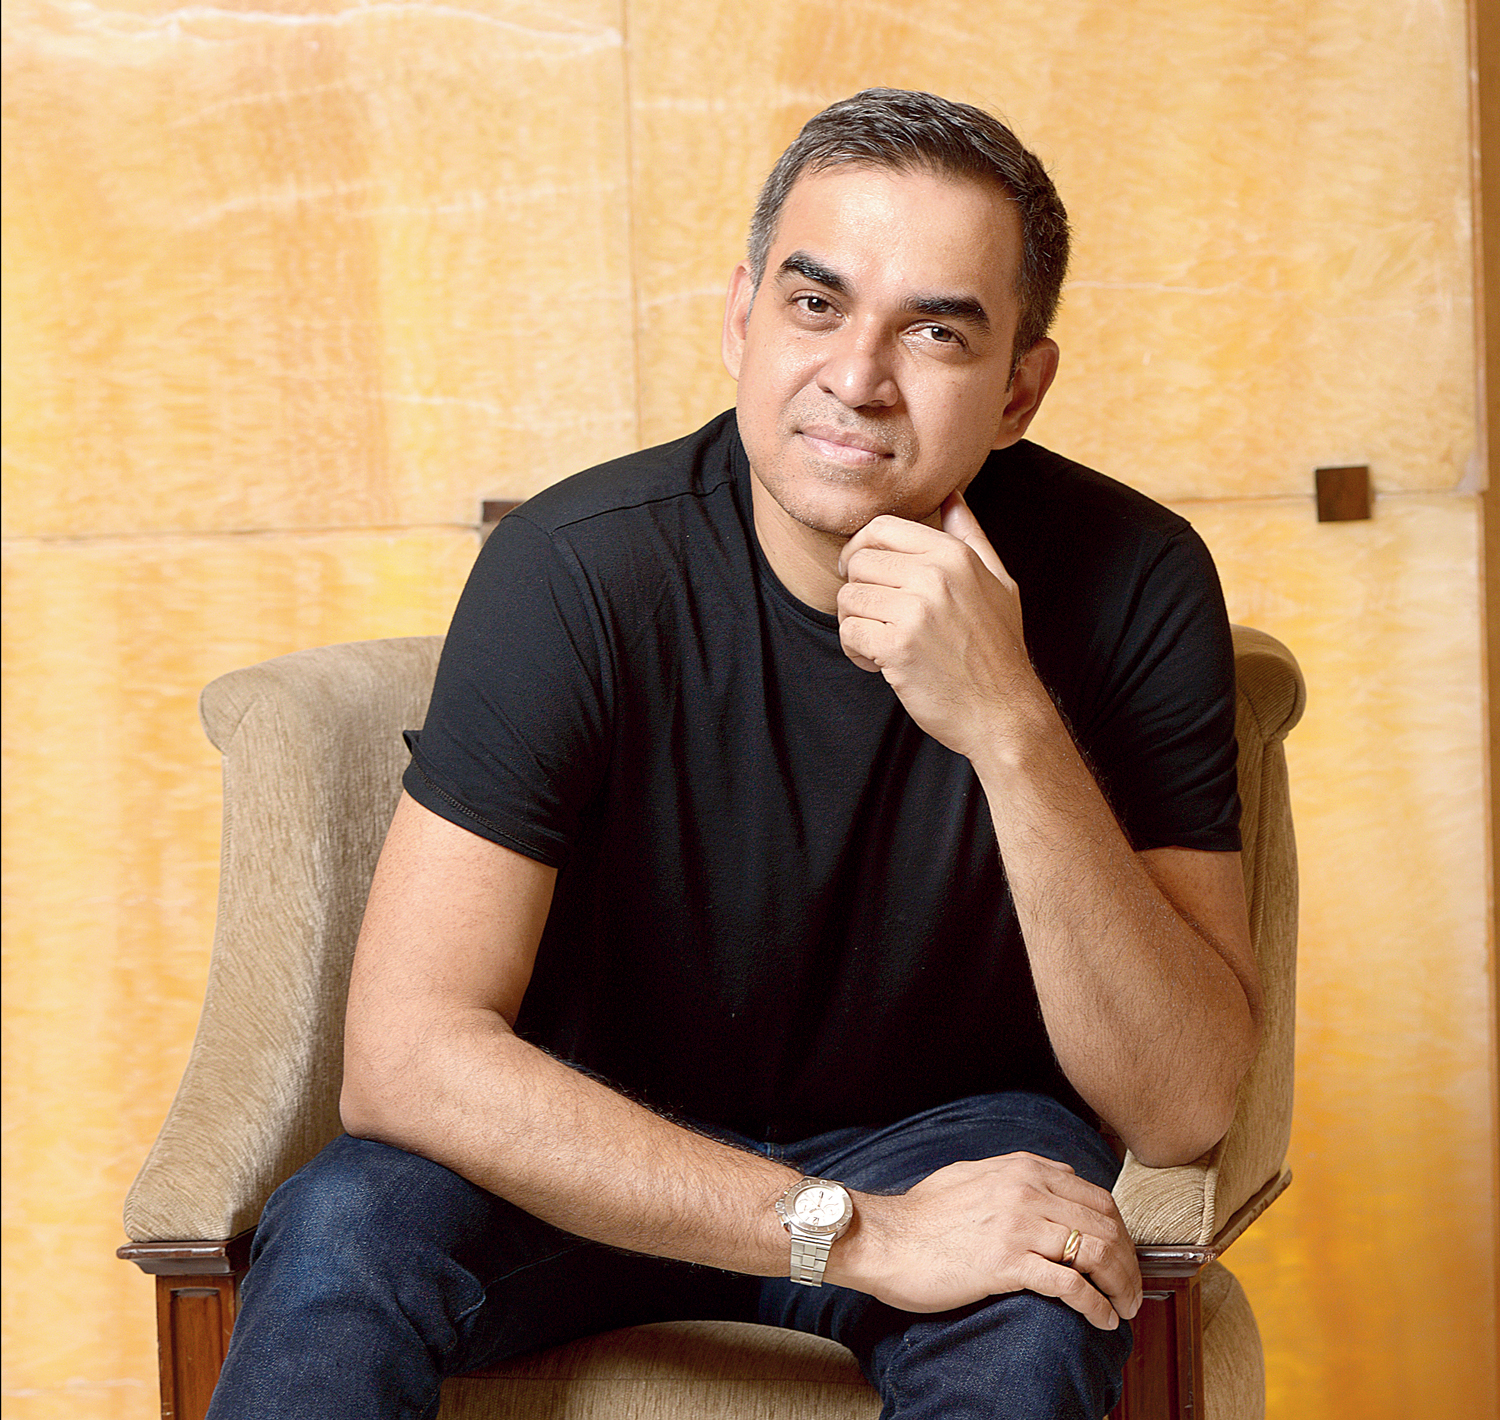 Bibhu Mohapatra traces his journey from Rourkela to New York, and charts the road ahead